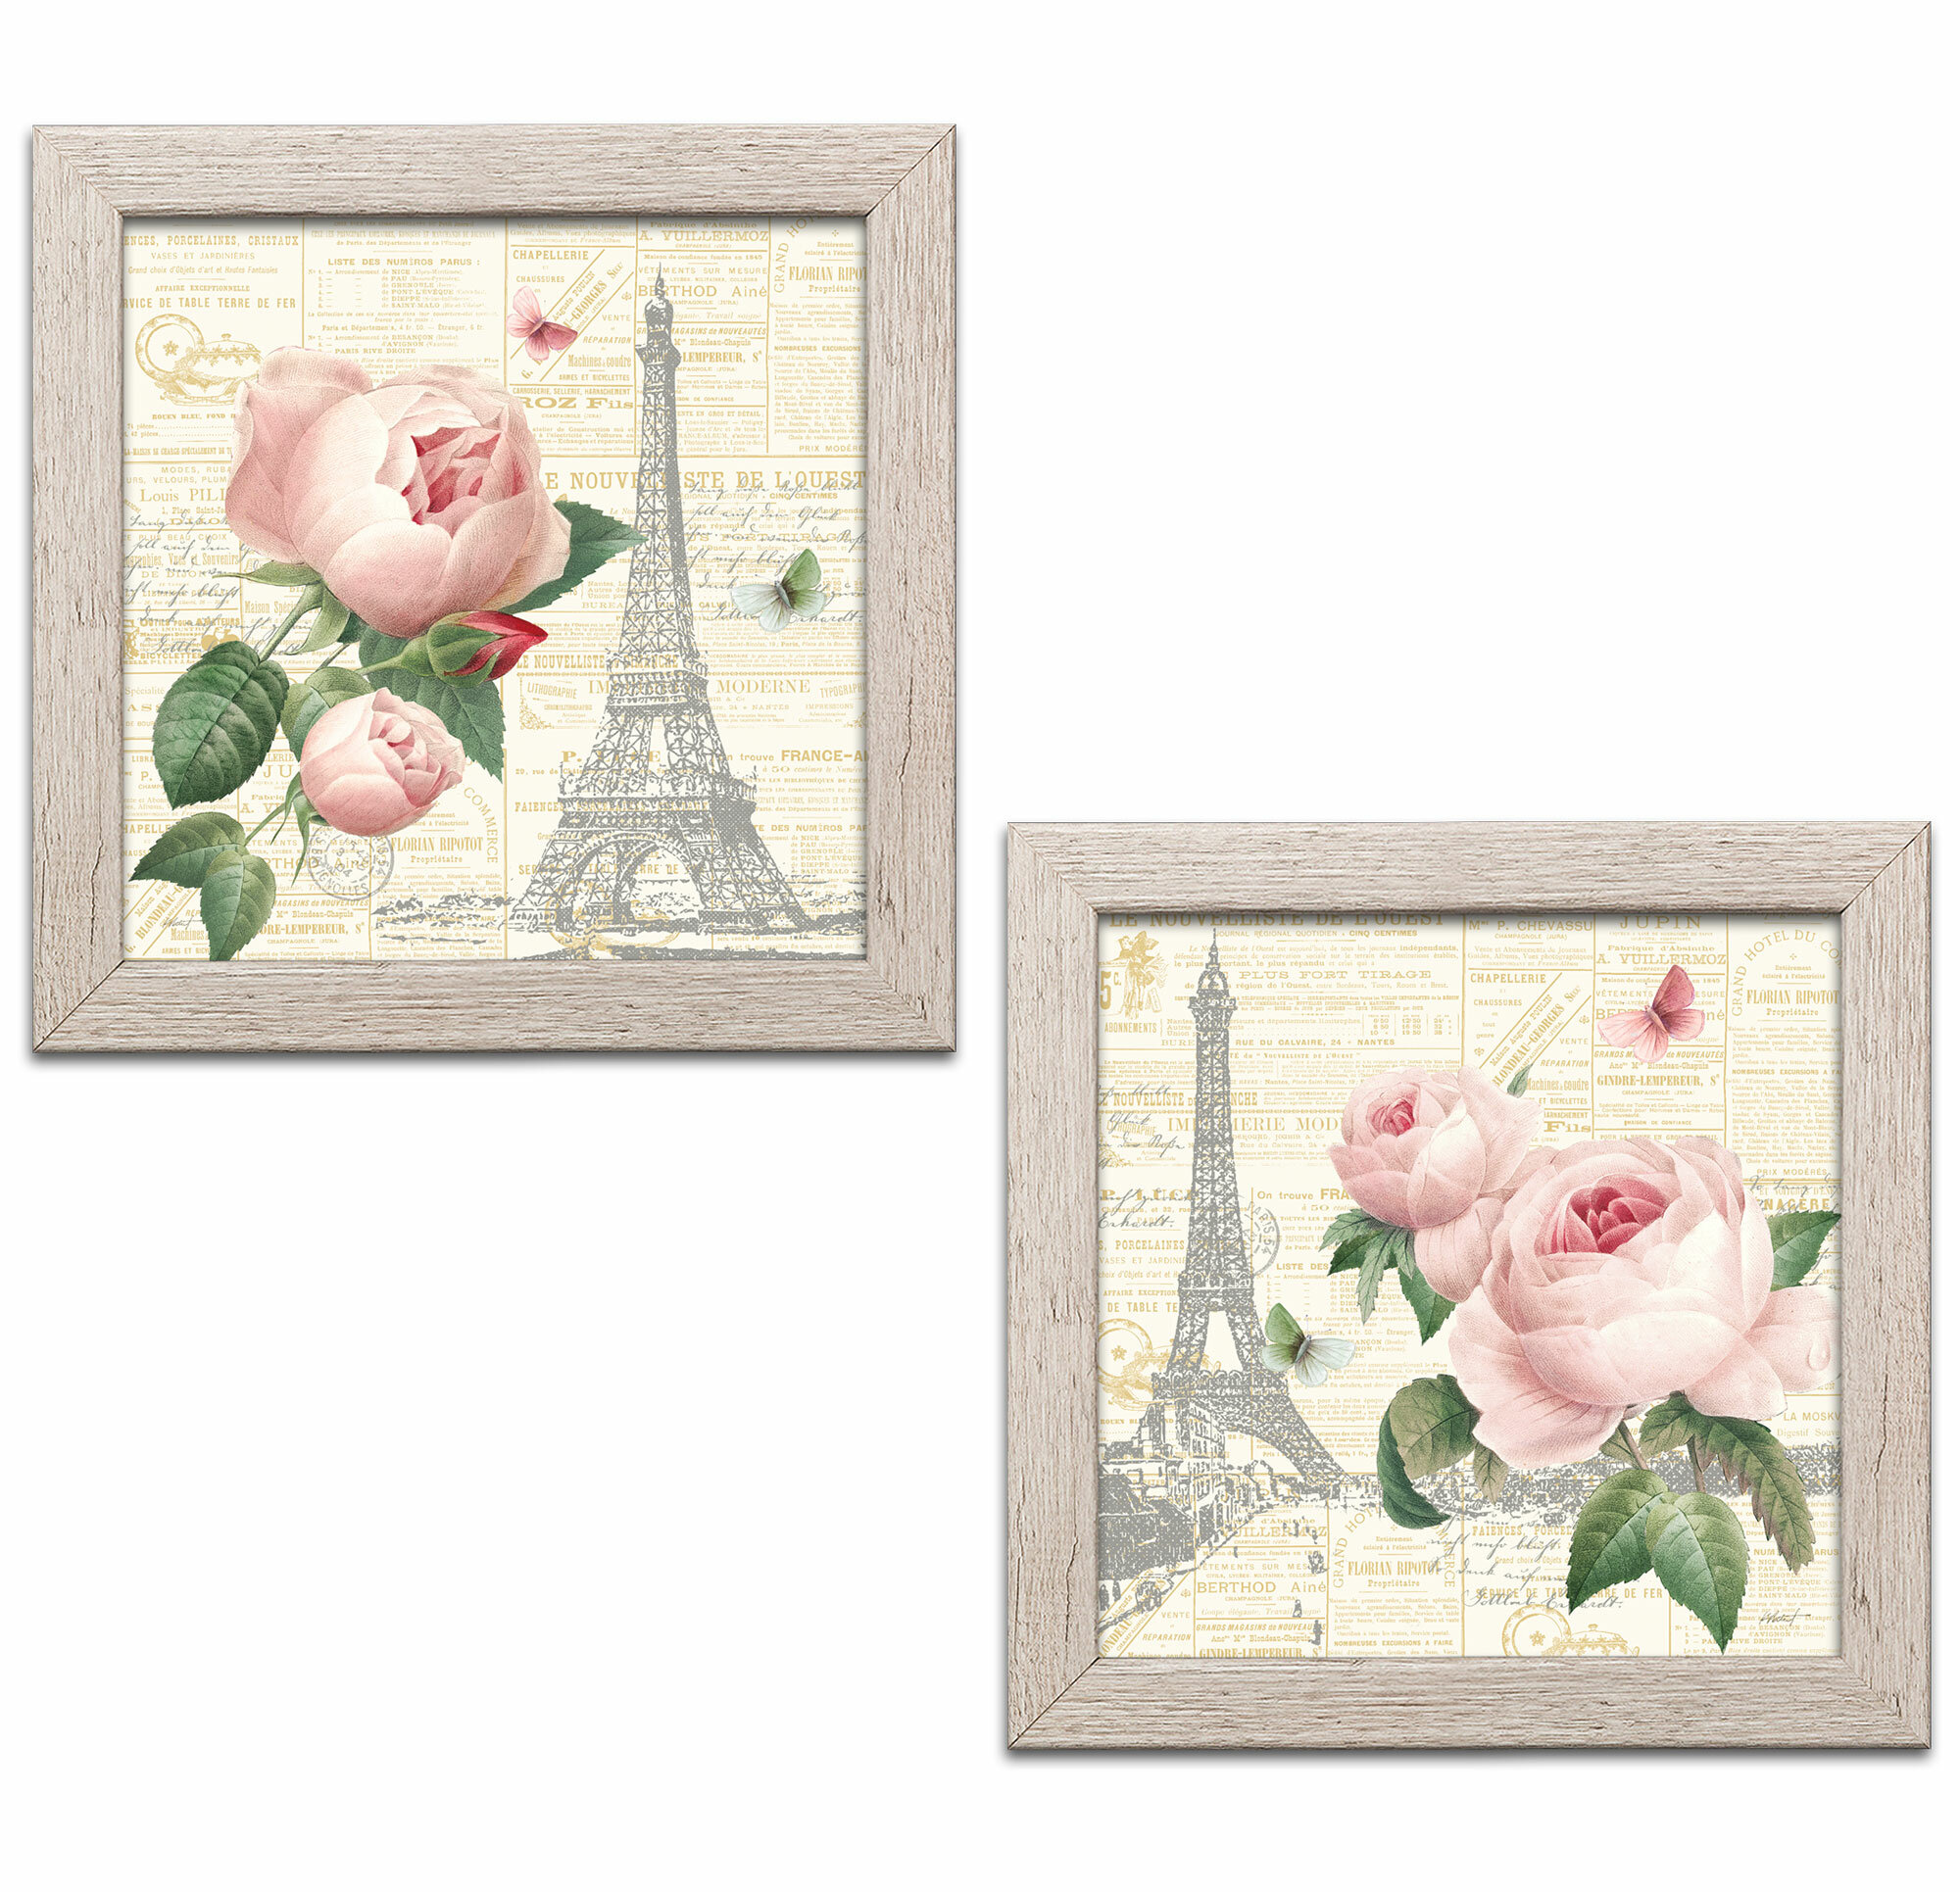 DISTRESSED PICTURE FRAME BUTTERFLY FLORAL PRINT FRAMED CANVAS WALL ART IMAGE